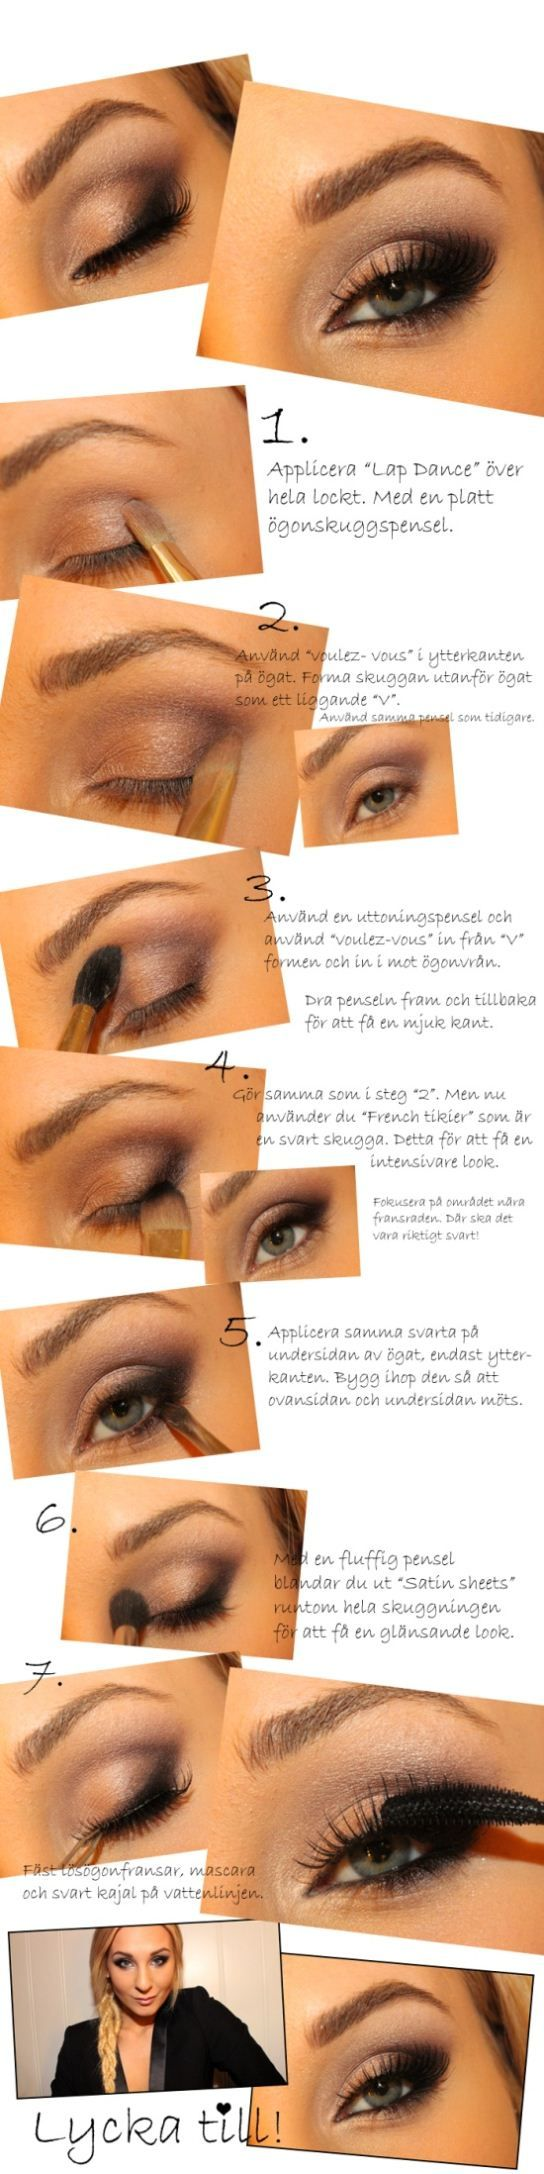 How to get this look with the Two-Faced eyeshadow pallet Boudior. Instructions are in French (maybe? whatevs) but the names of the colors are in English.